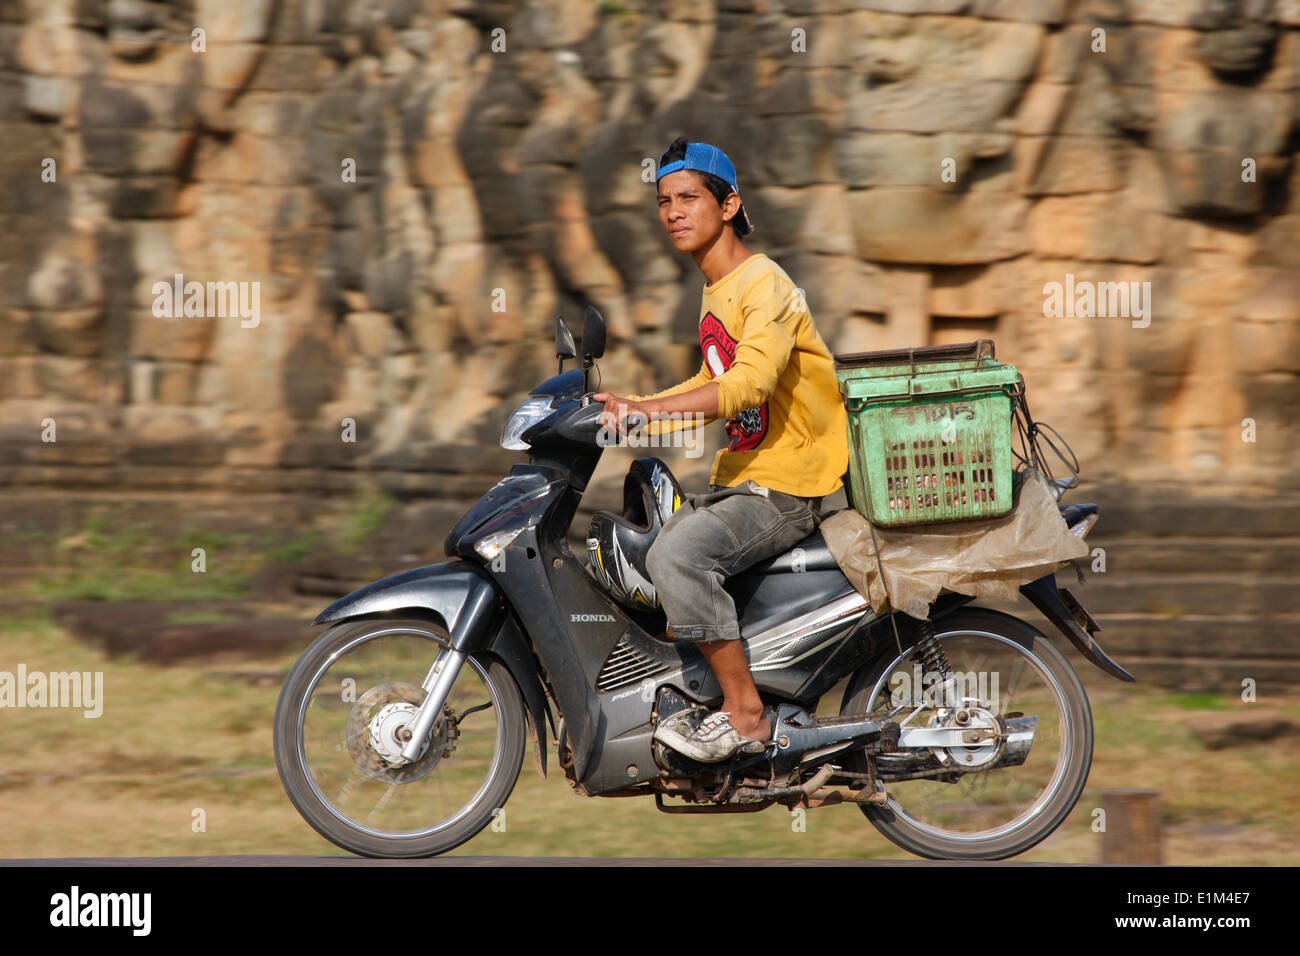 Motorcycle delivery - Stock Image